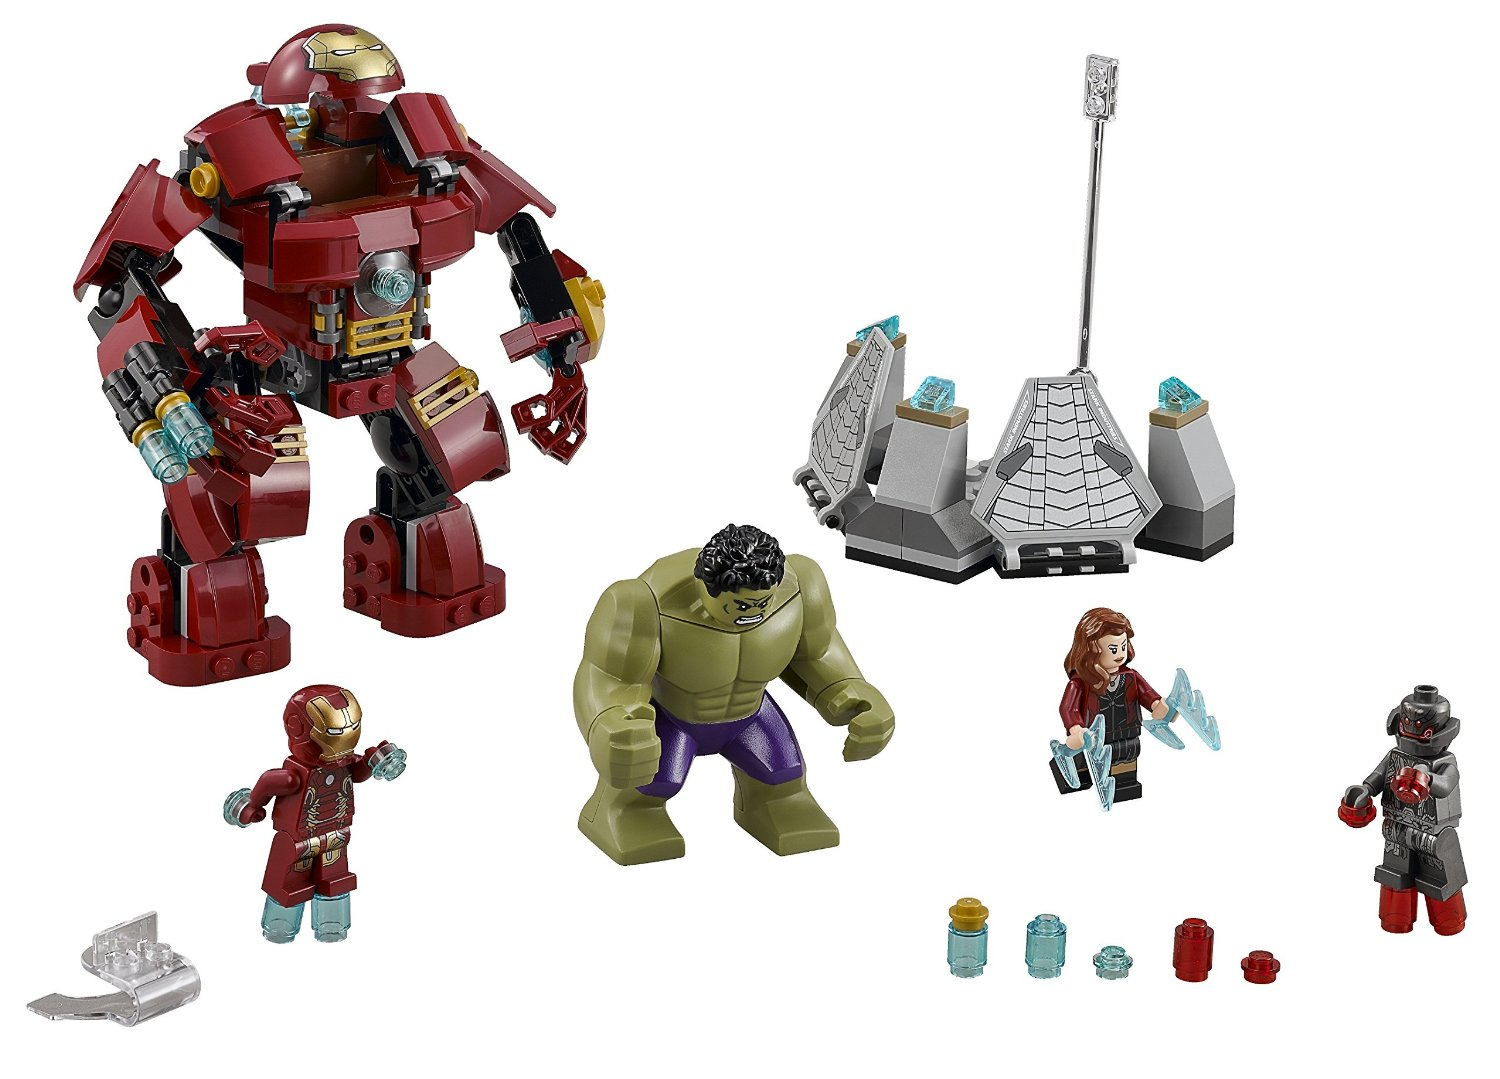 New Summer Lego Marvel Set Images and Minifigures Posted ...